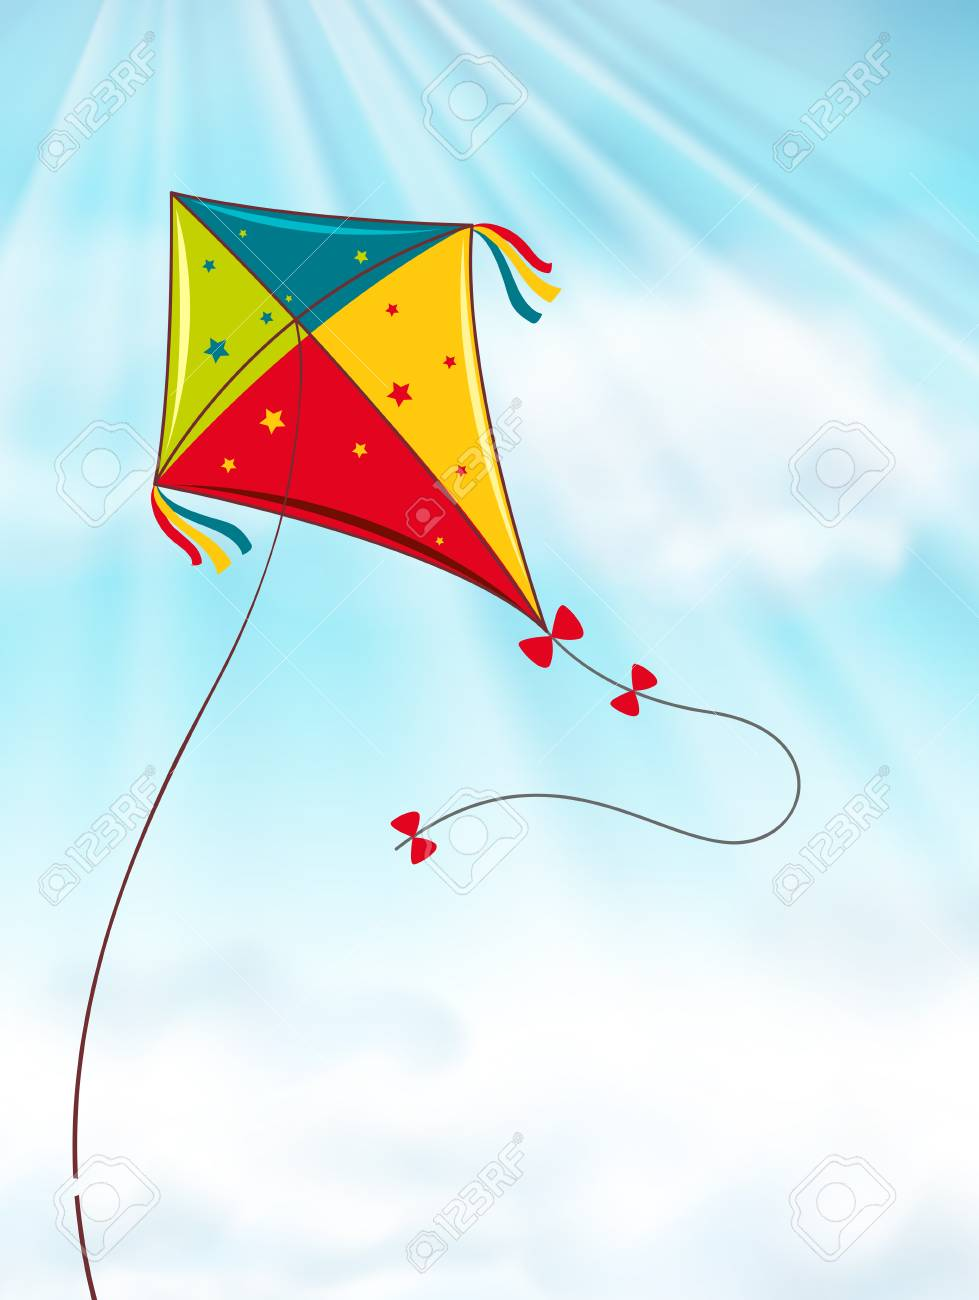 colorful kite flying in blue sky illustration royalty free cliparts